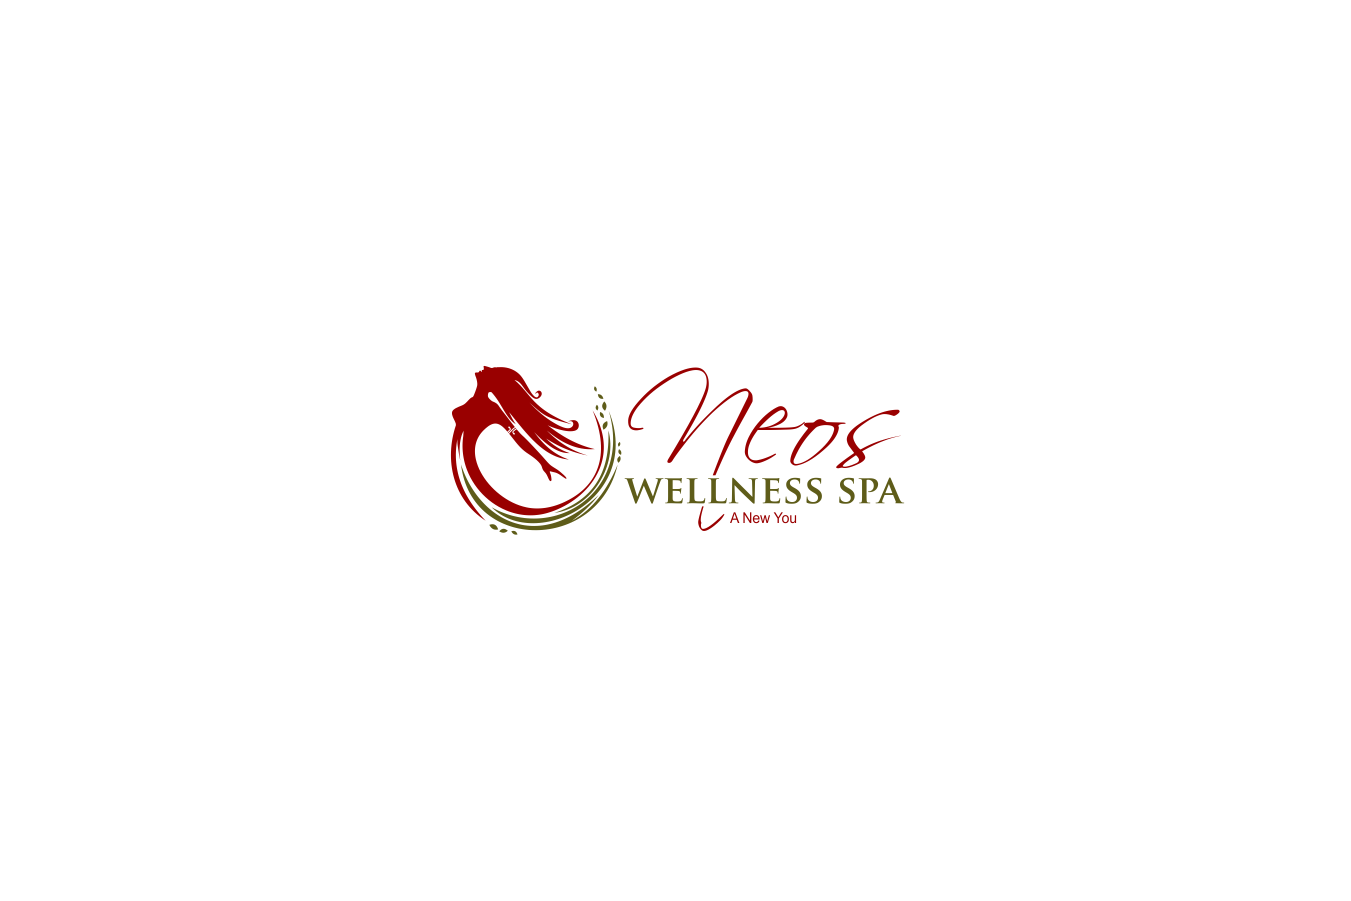 New logo wanted for Neos Wellness Spa